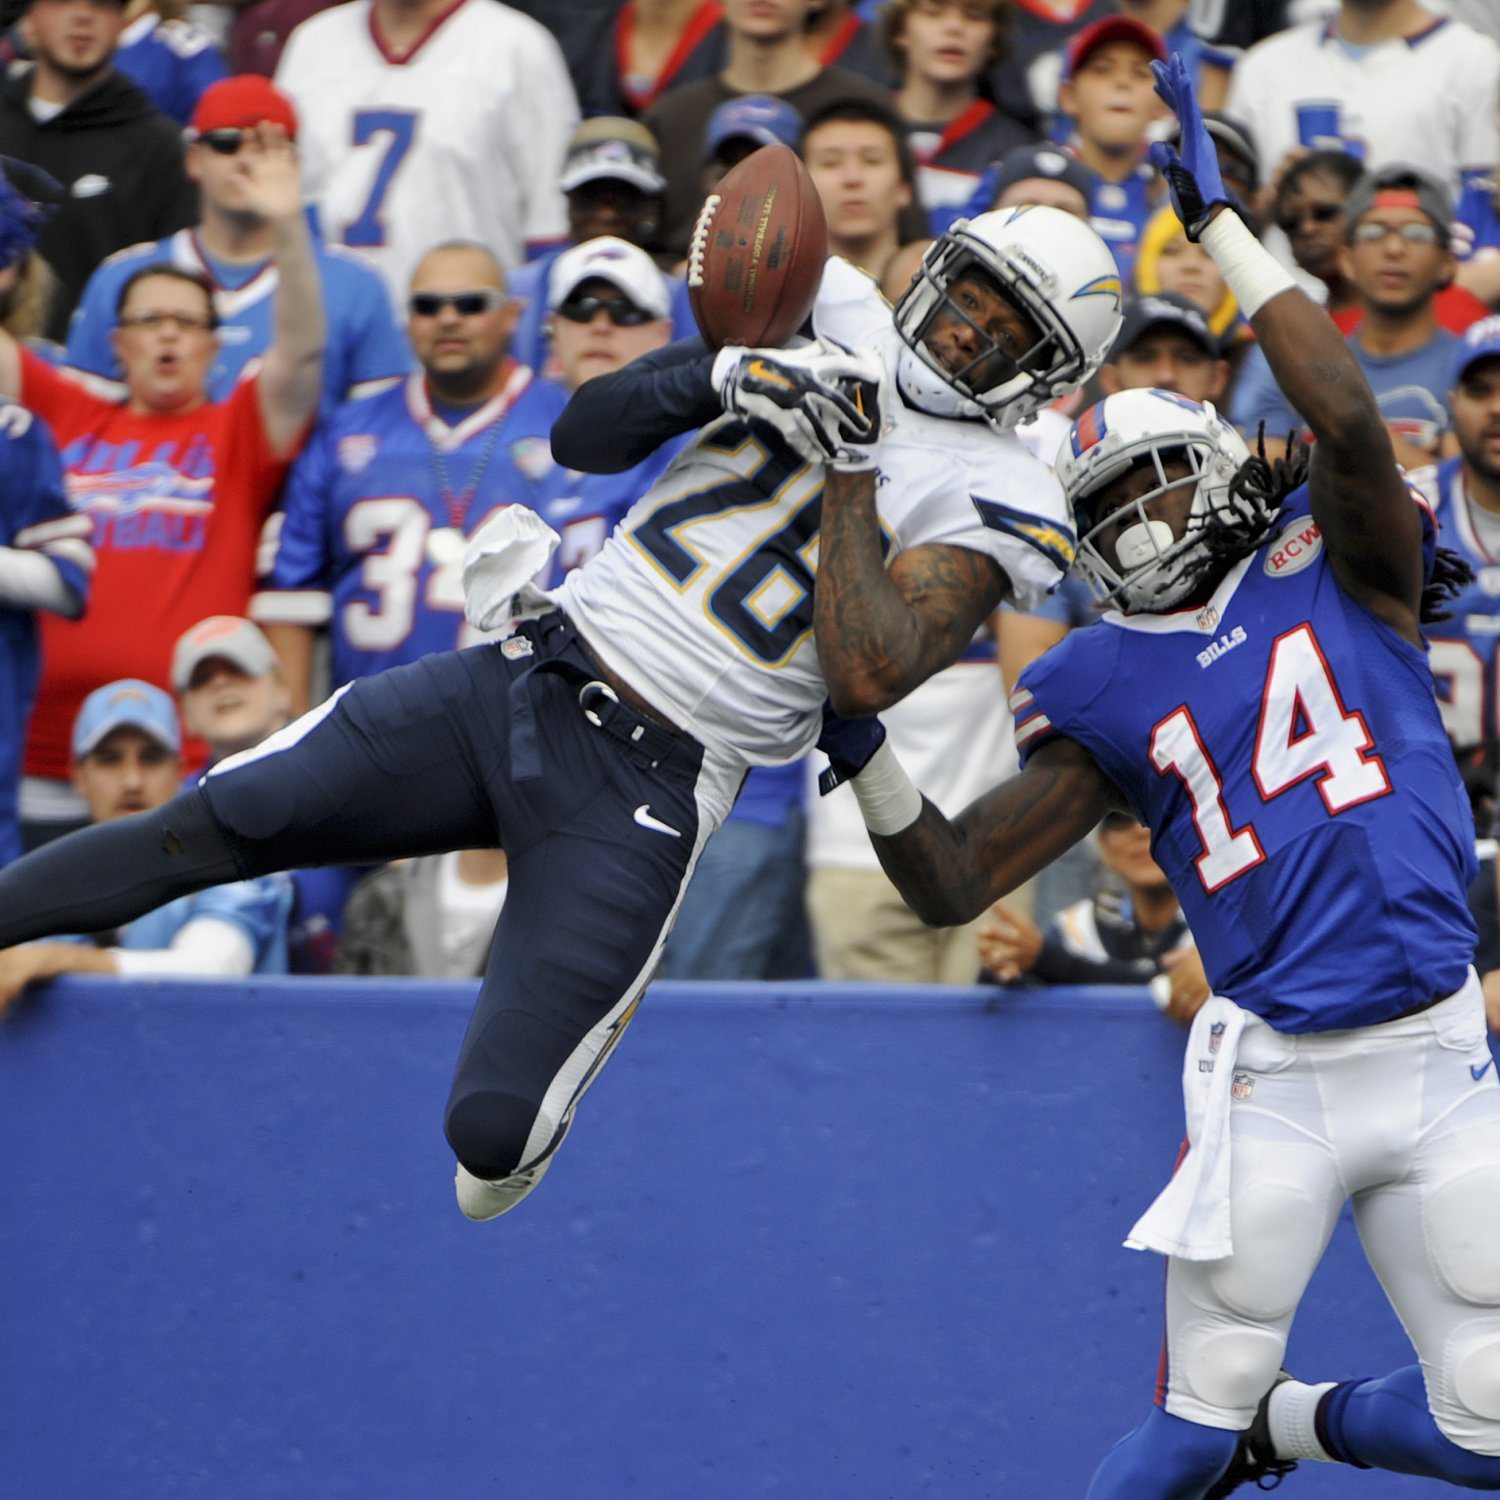 San Diego Chargers Broadcast: San Diego Chargers Vs. Buffalo Bills: Video Highlights And